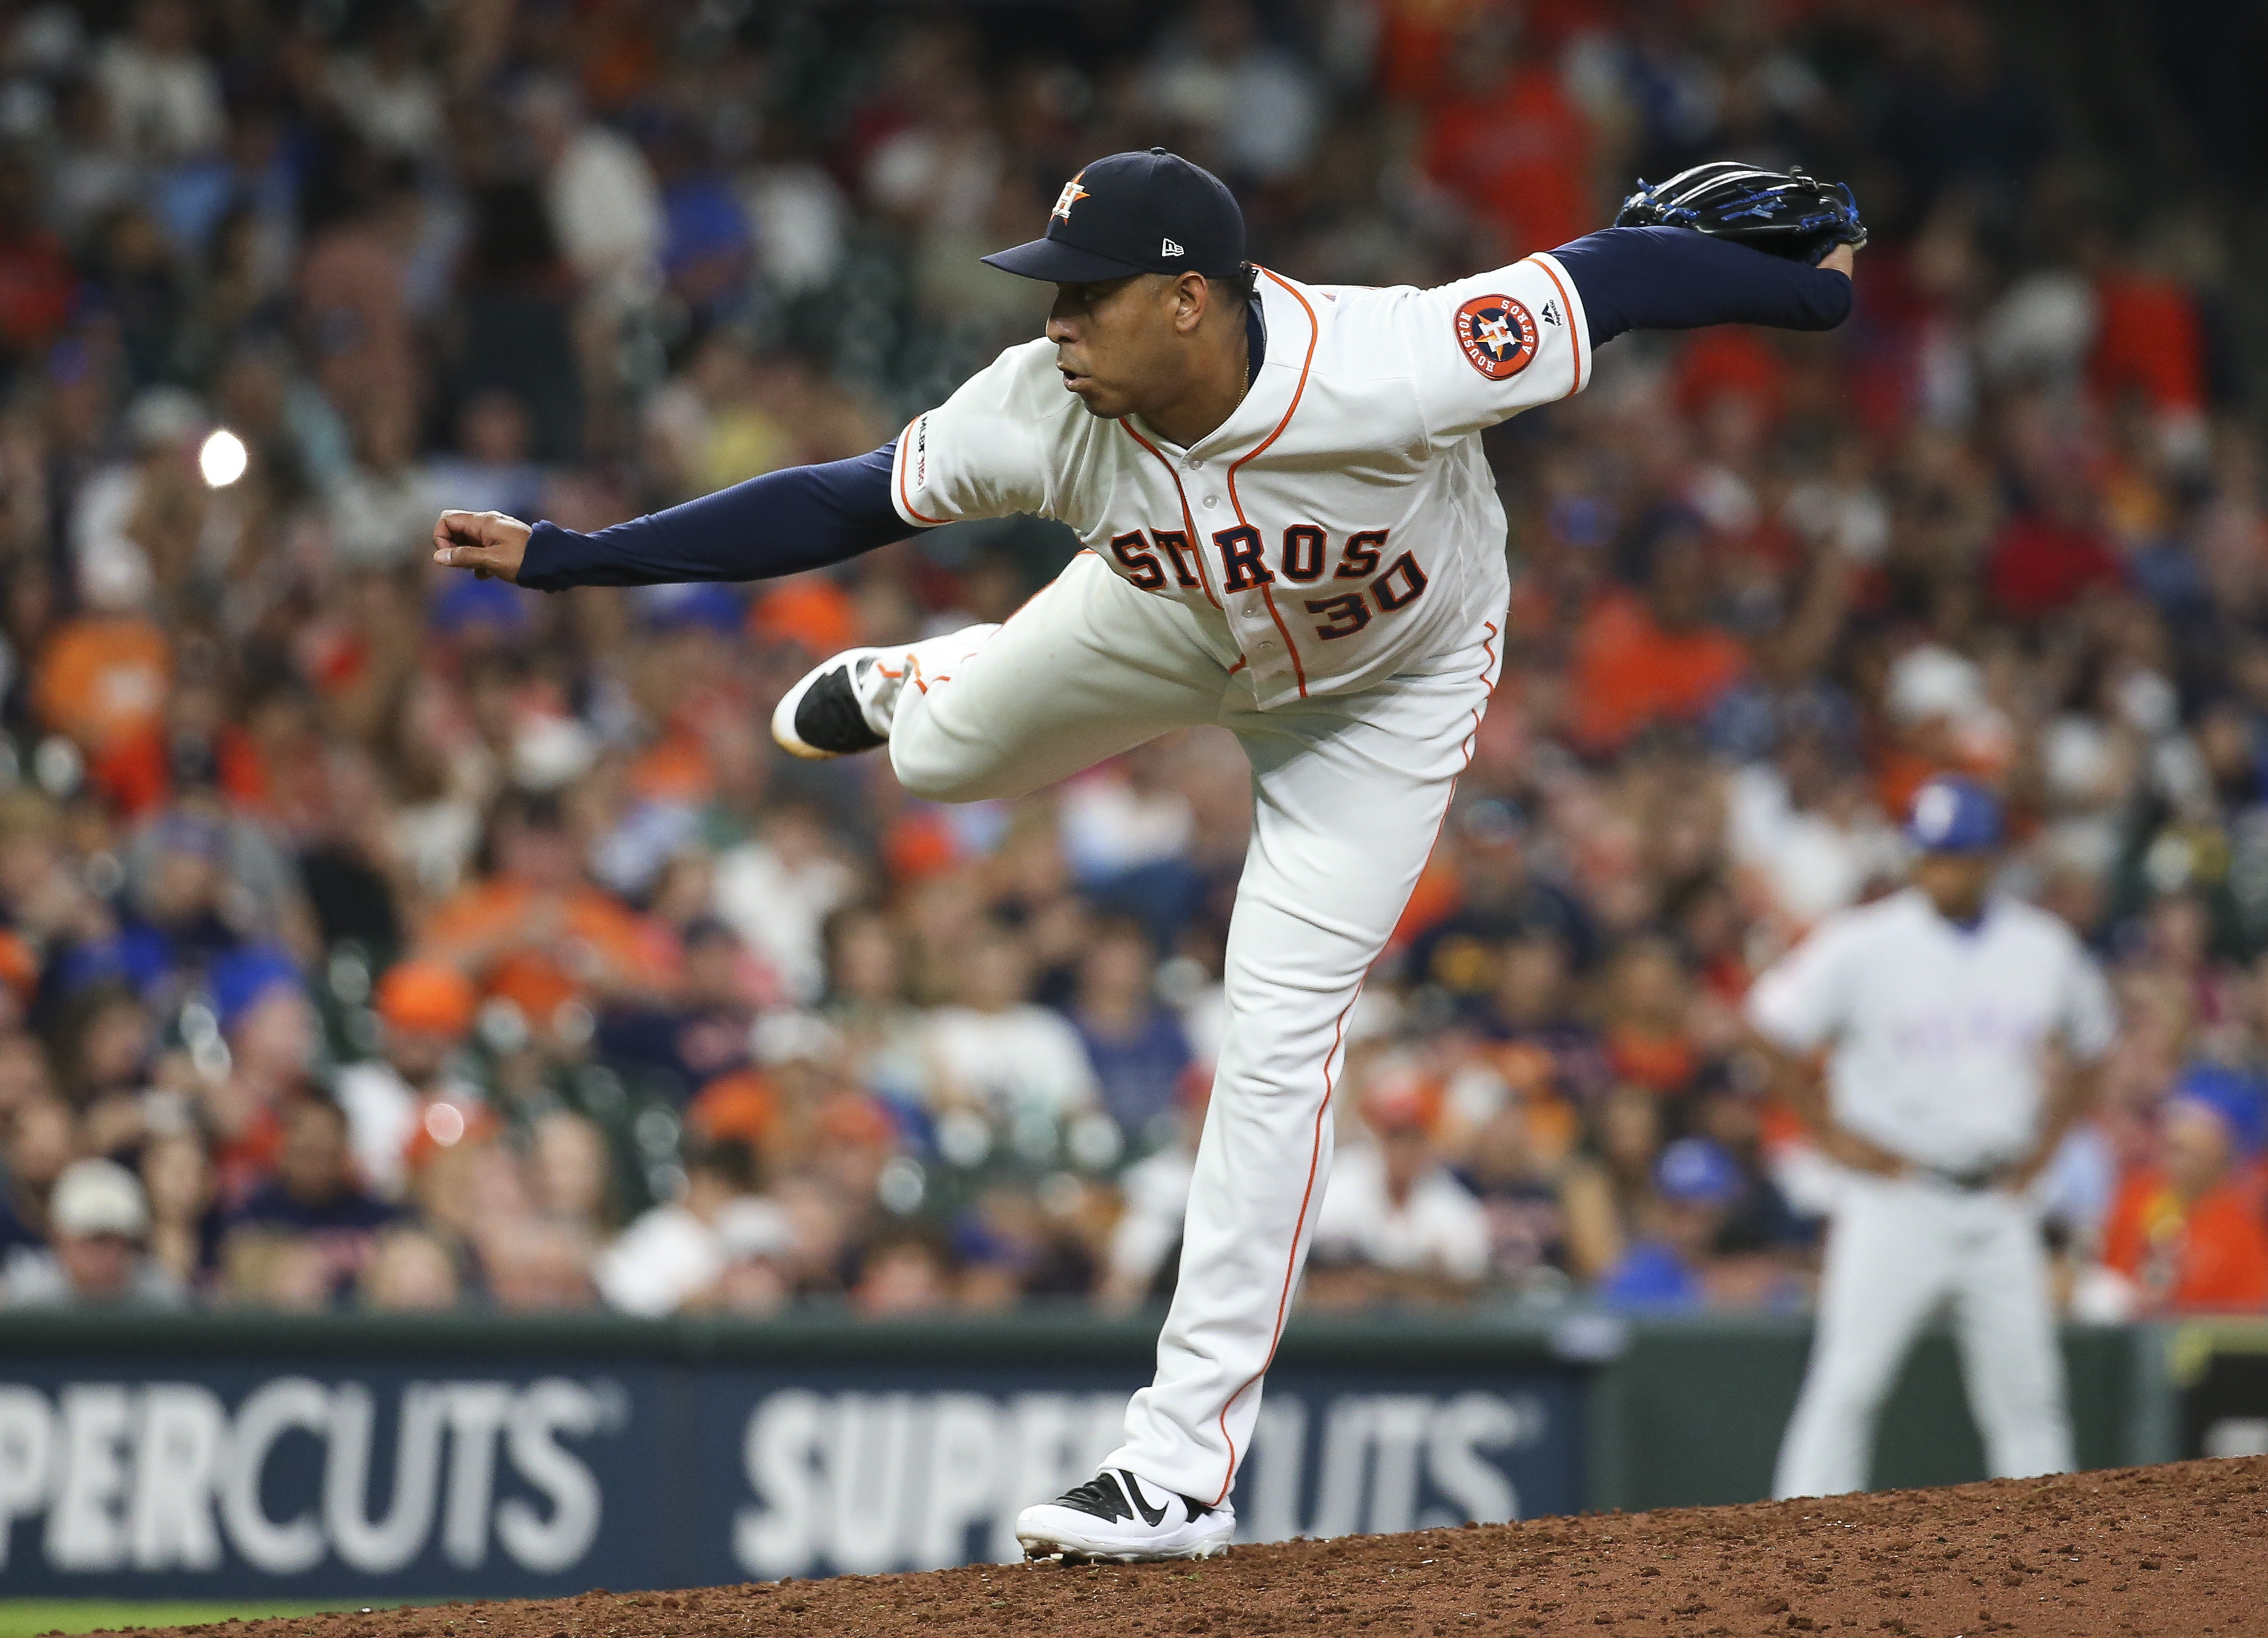 Diamondbacks sign relief pitcher Hector Rondon from the Astros